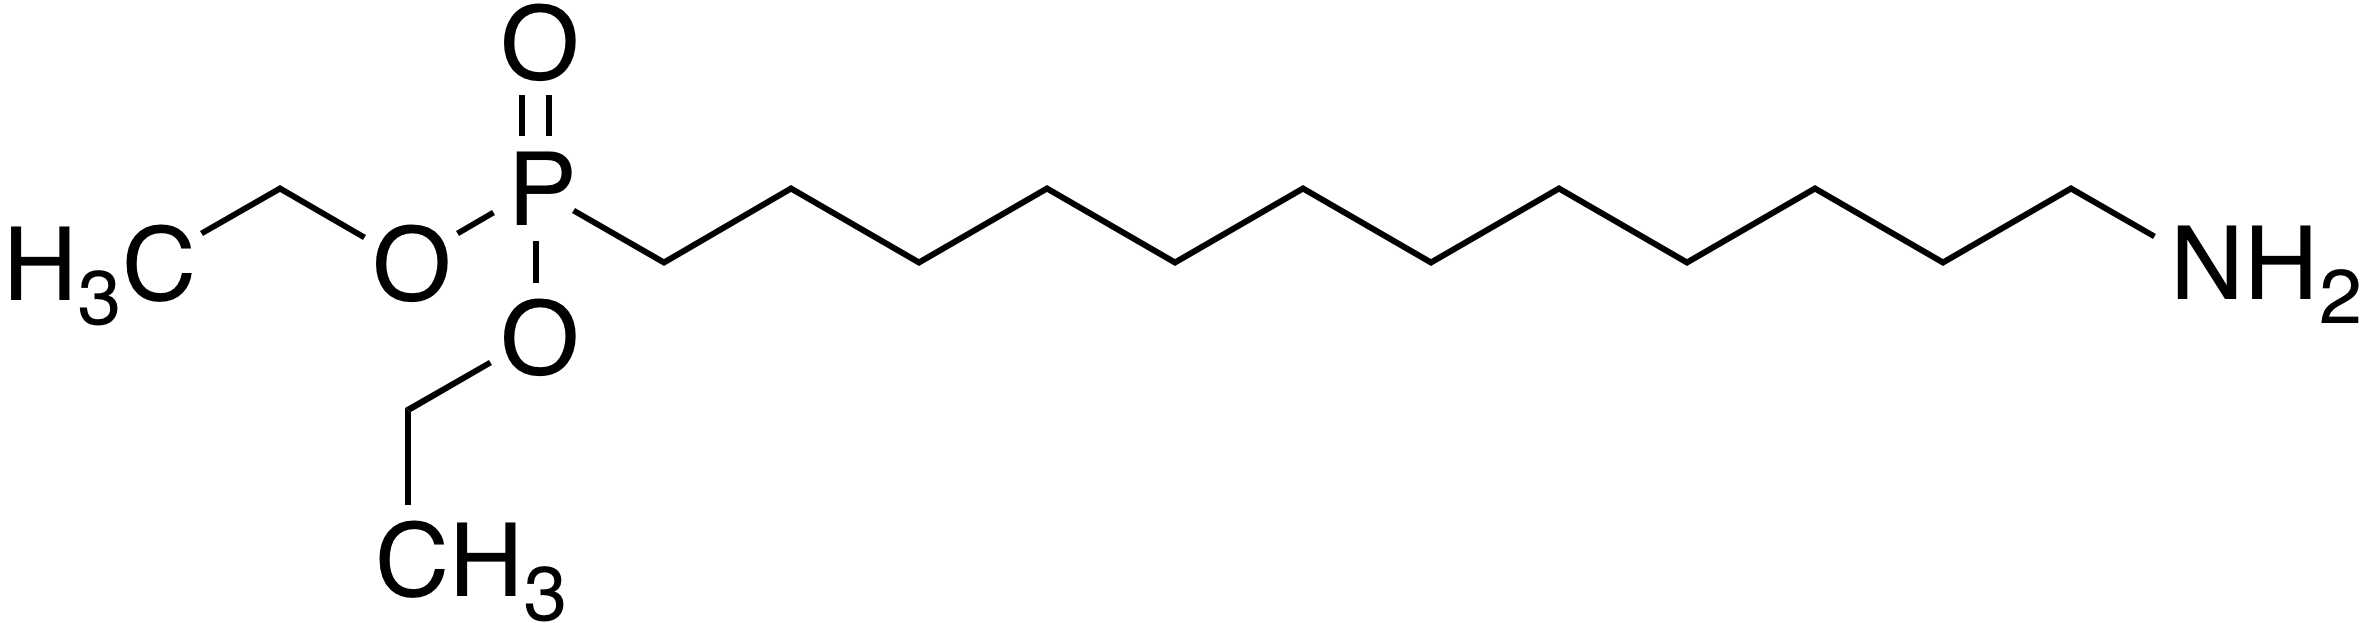 Diethyl (12-aminododecyl)phosphonate